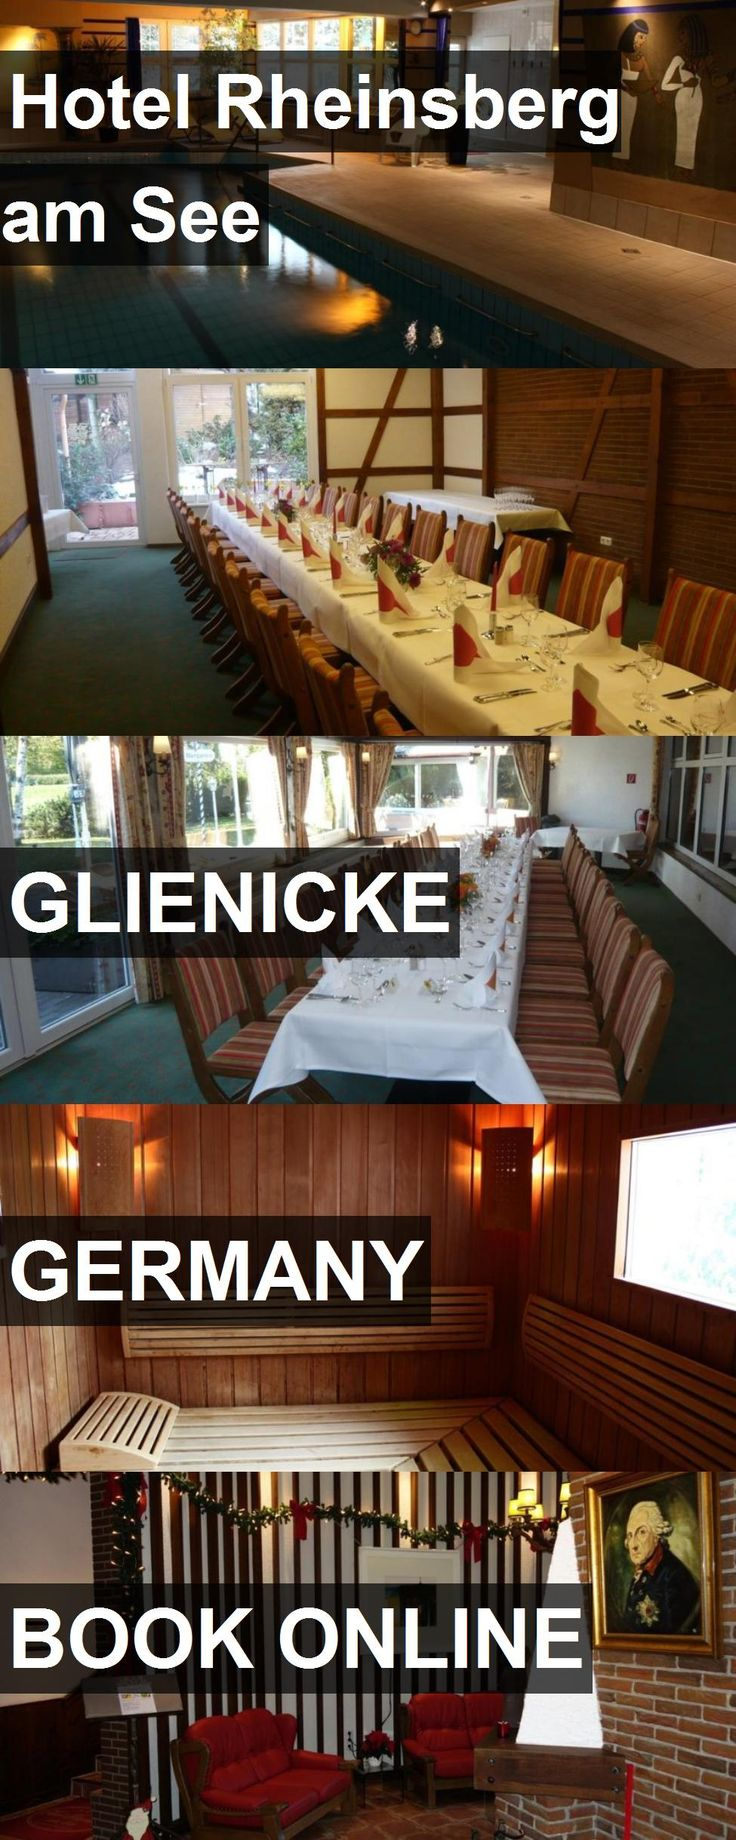 Hotel Hotel Rheinsberg am See in Glienicke, Germany. For more information, photos, reviews and best prices please follow the link. #Germany #Glienicke #HotelRheinsbergamSee #hotel #travel #vacation